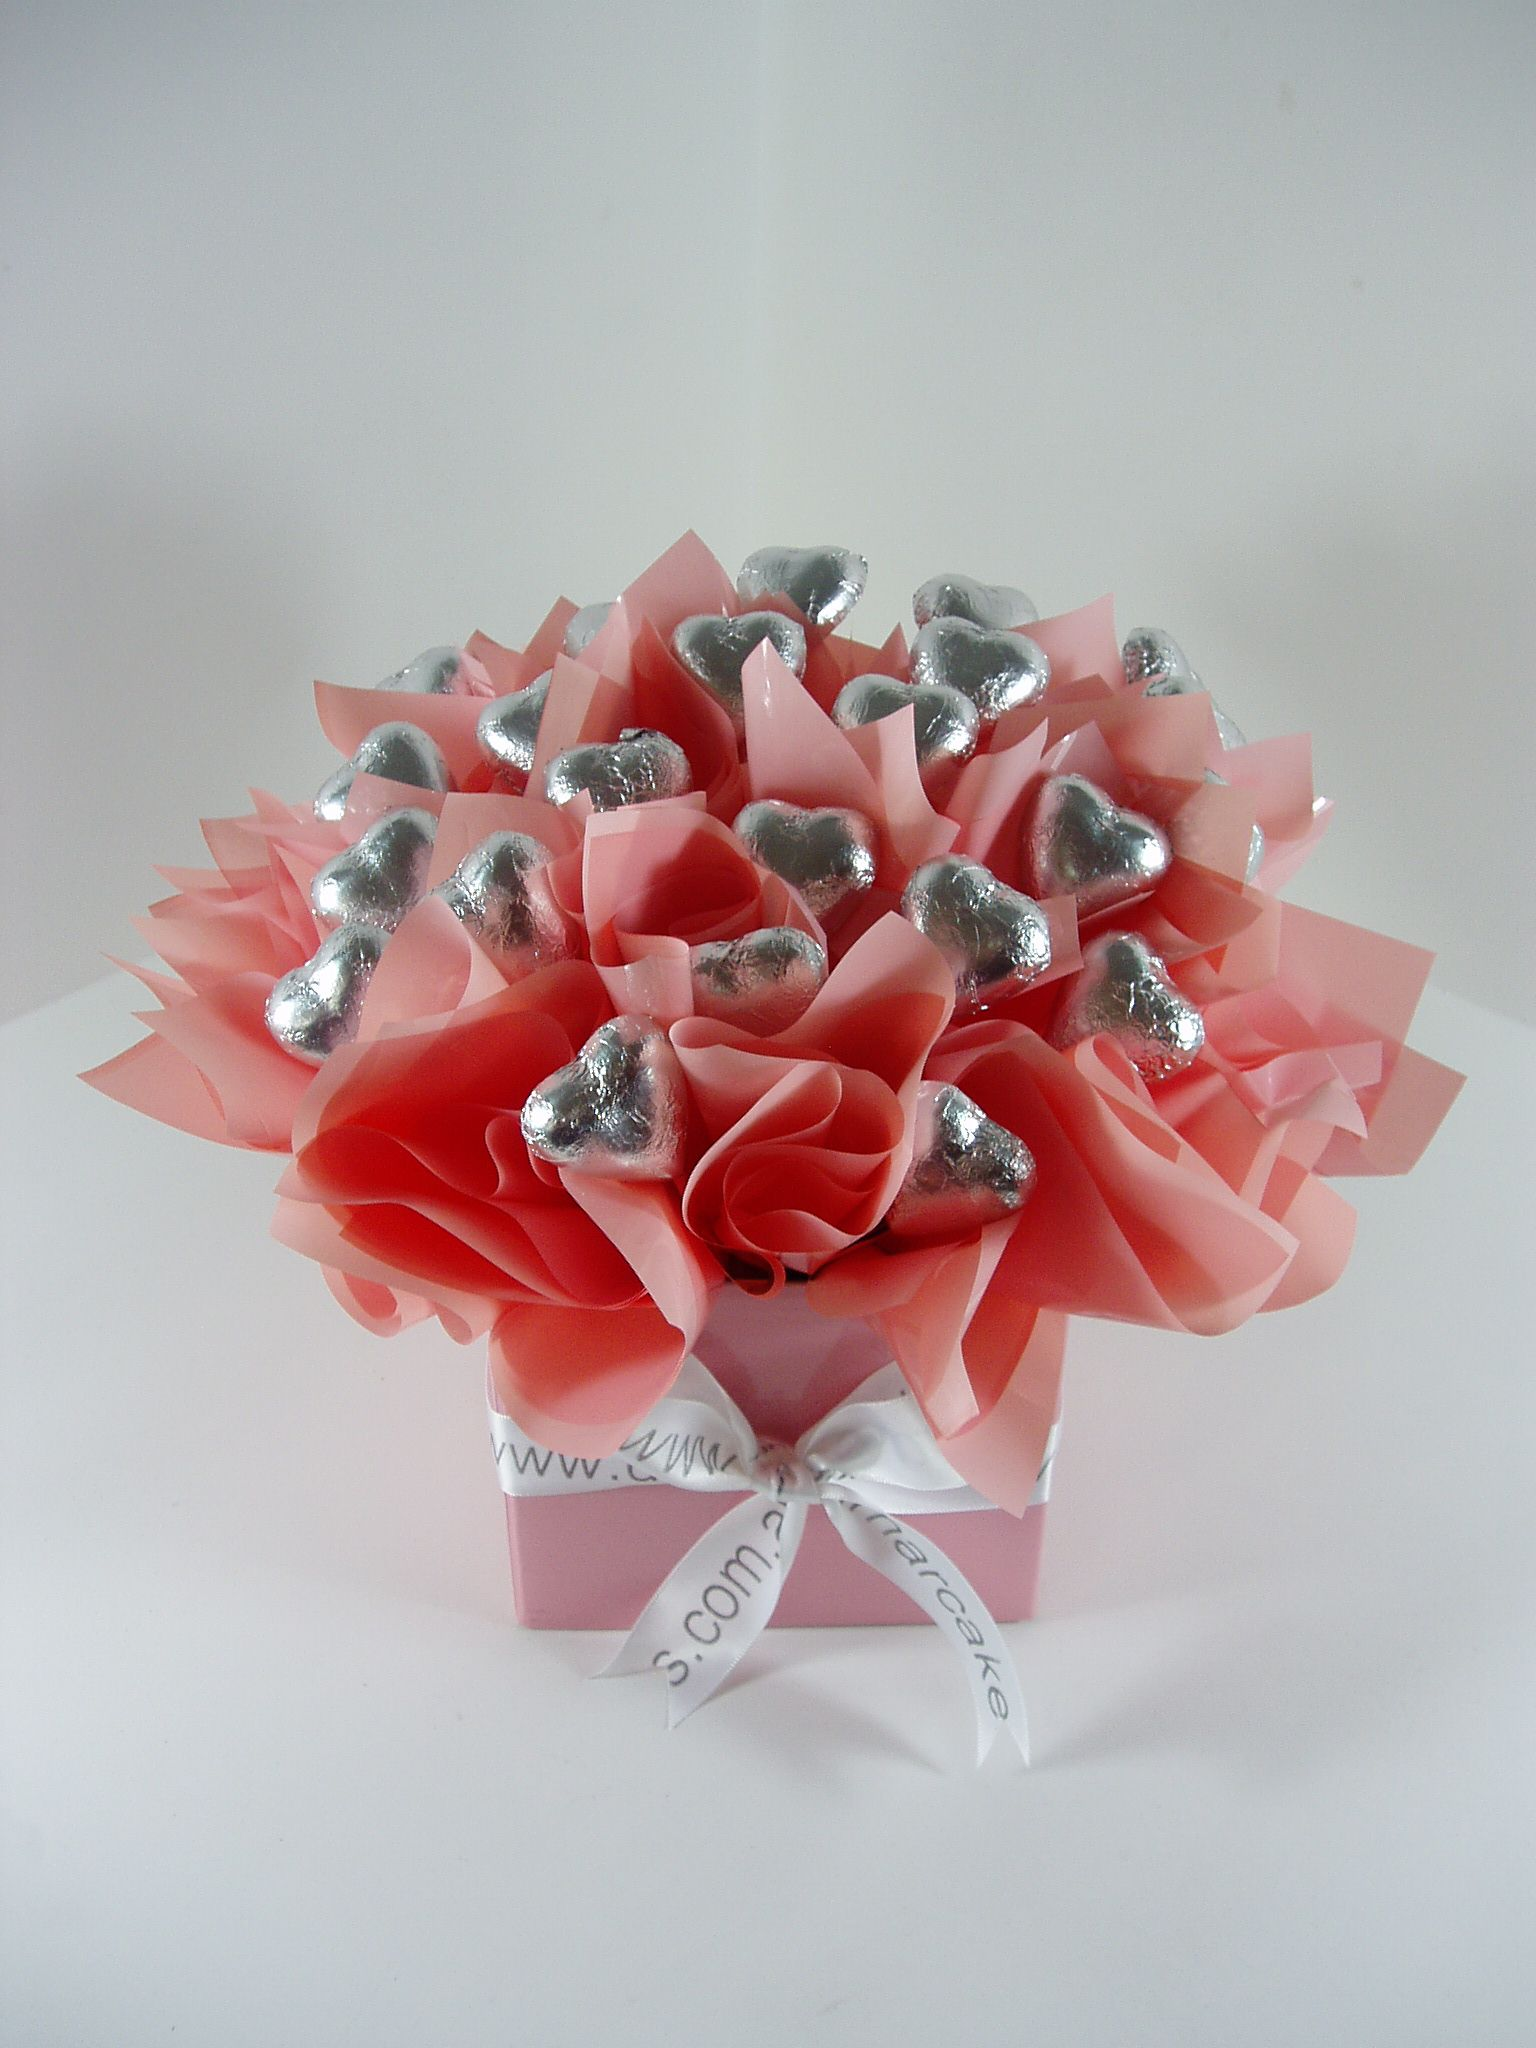 Slver Heart Chocolate Bouquet | Proyectos que intentar | Pinterest ...